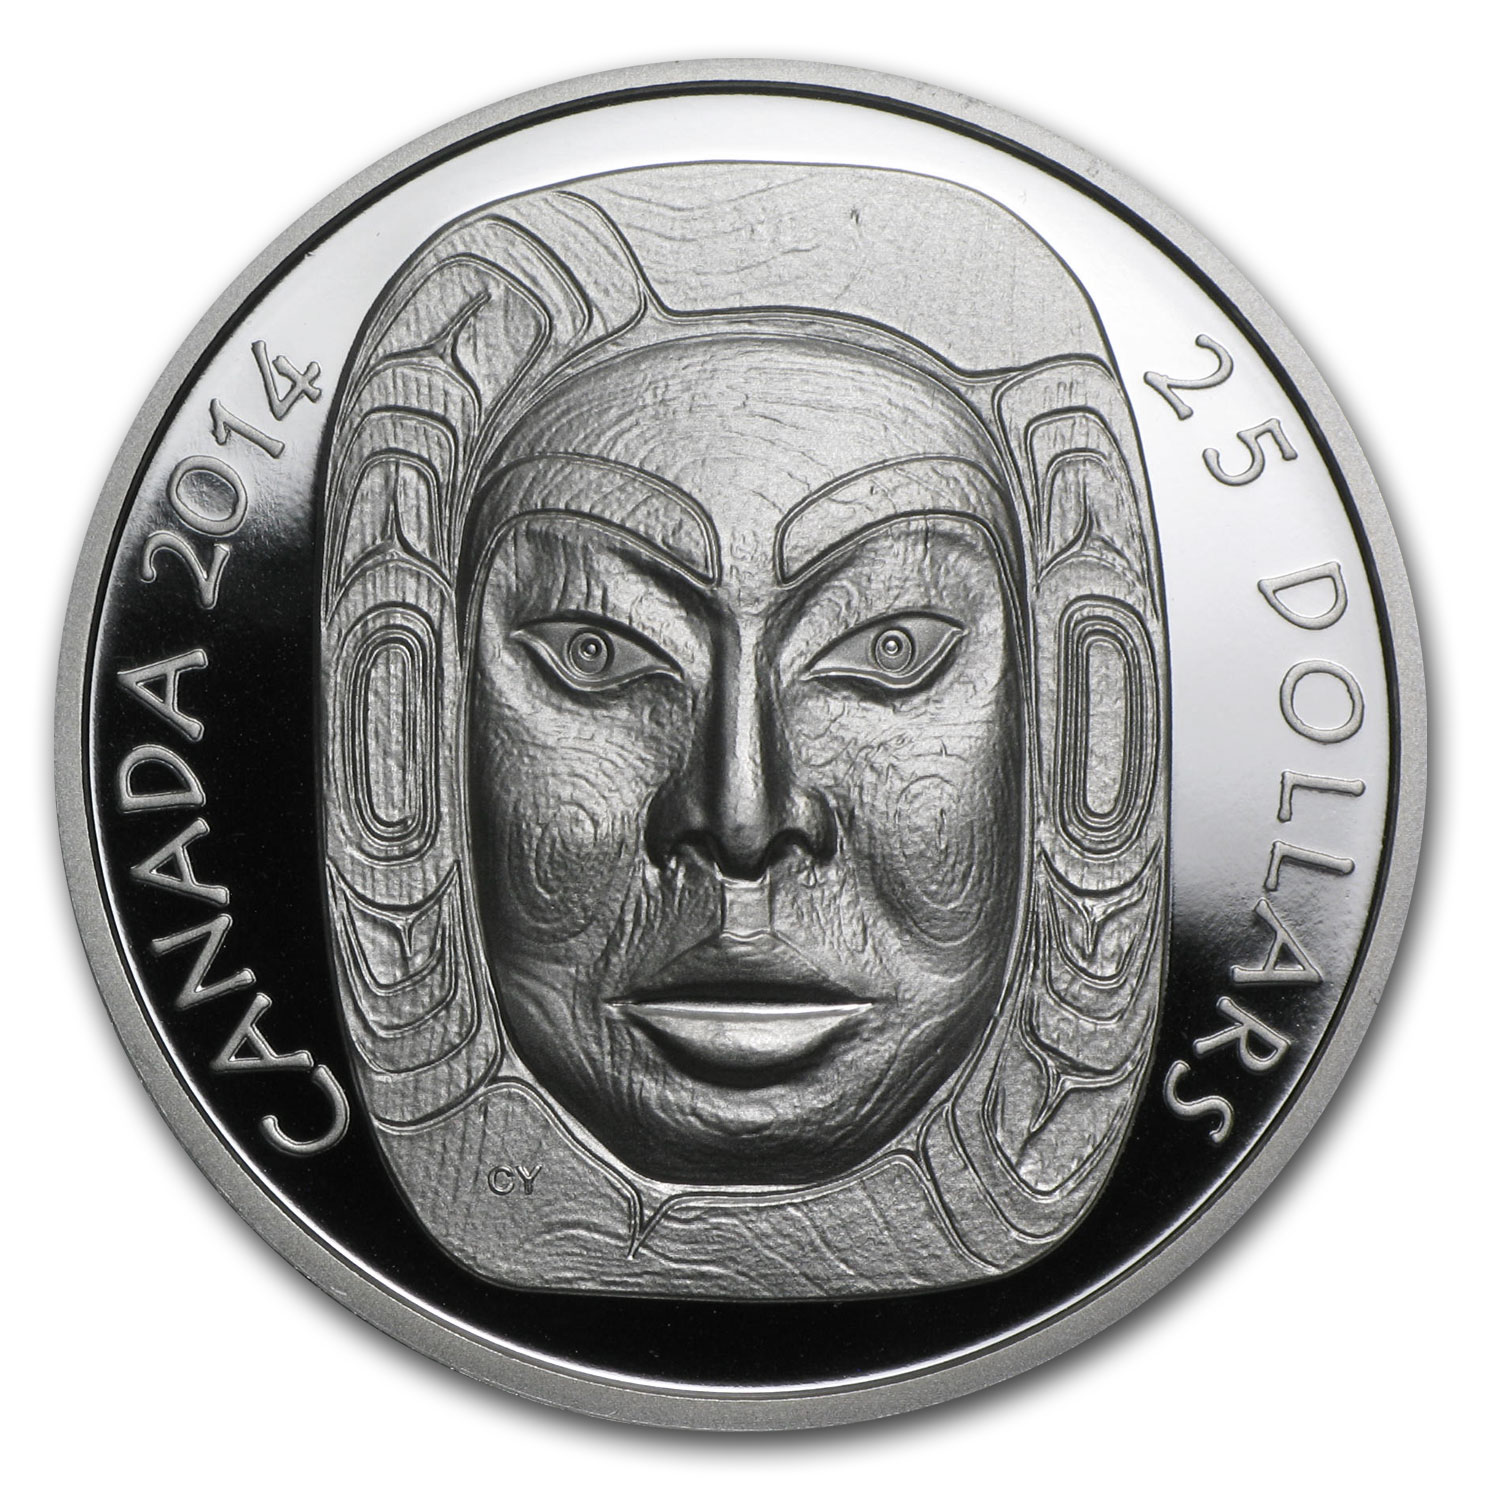 2014 1 oz Silver Canadian $25 Matriarch Moon Mask (UHR)